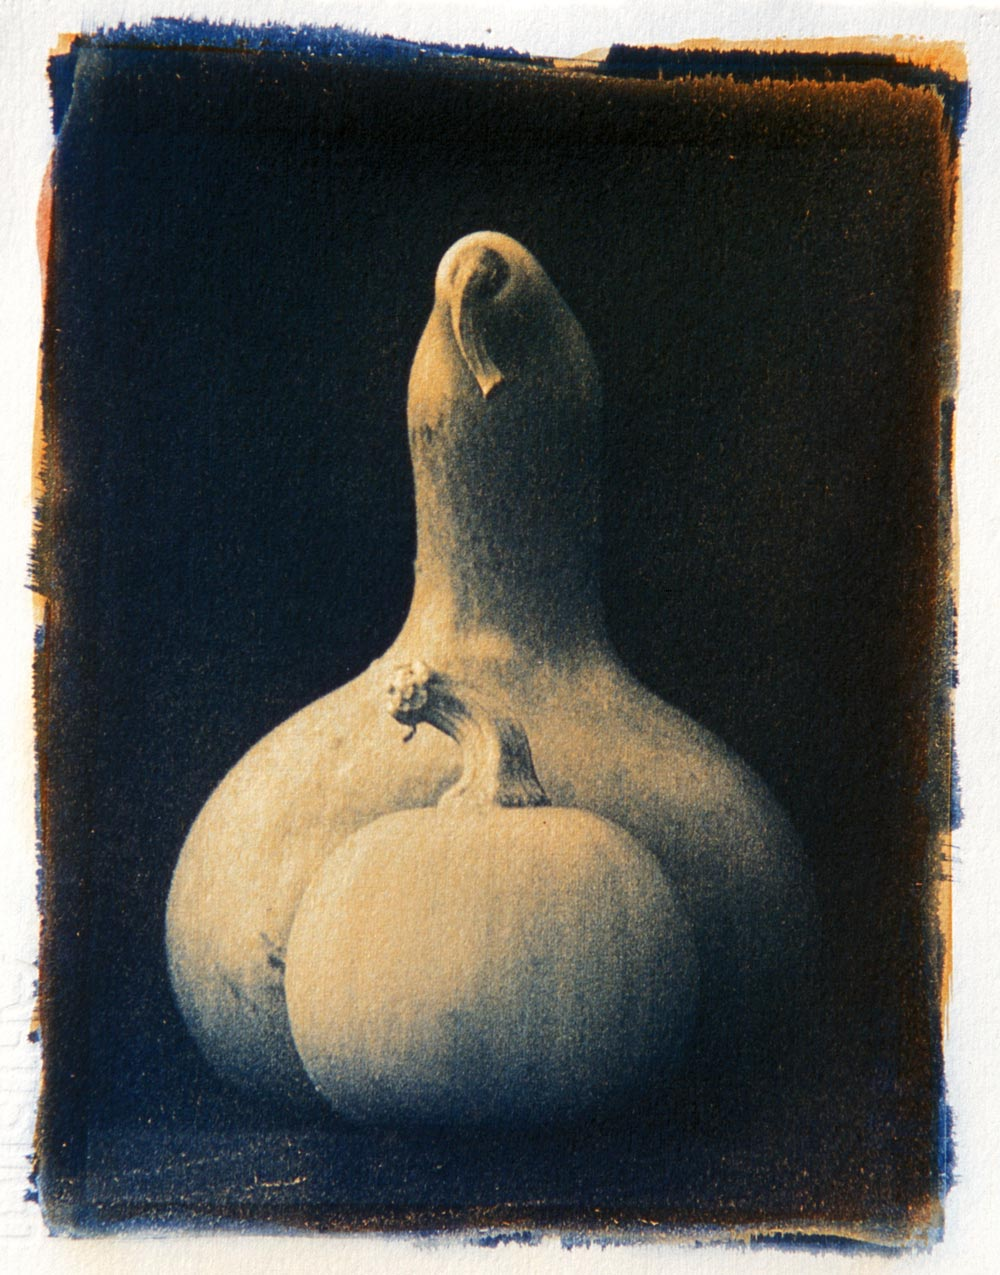 Gourds, One